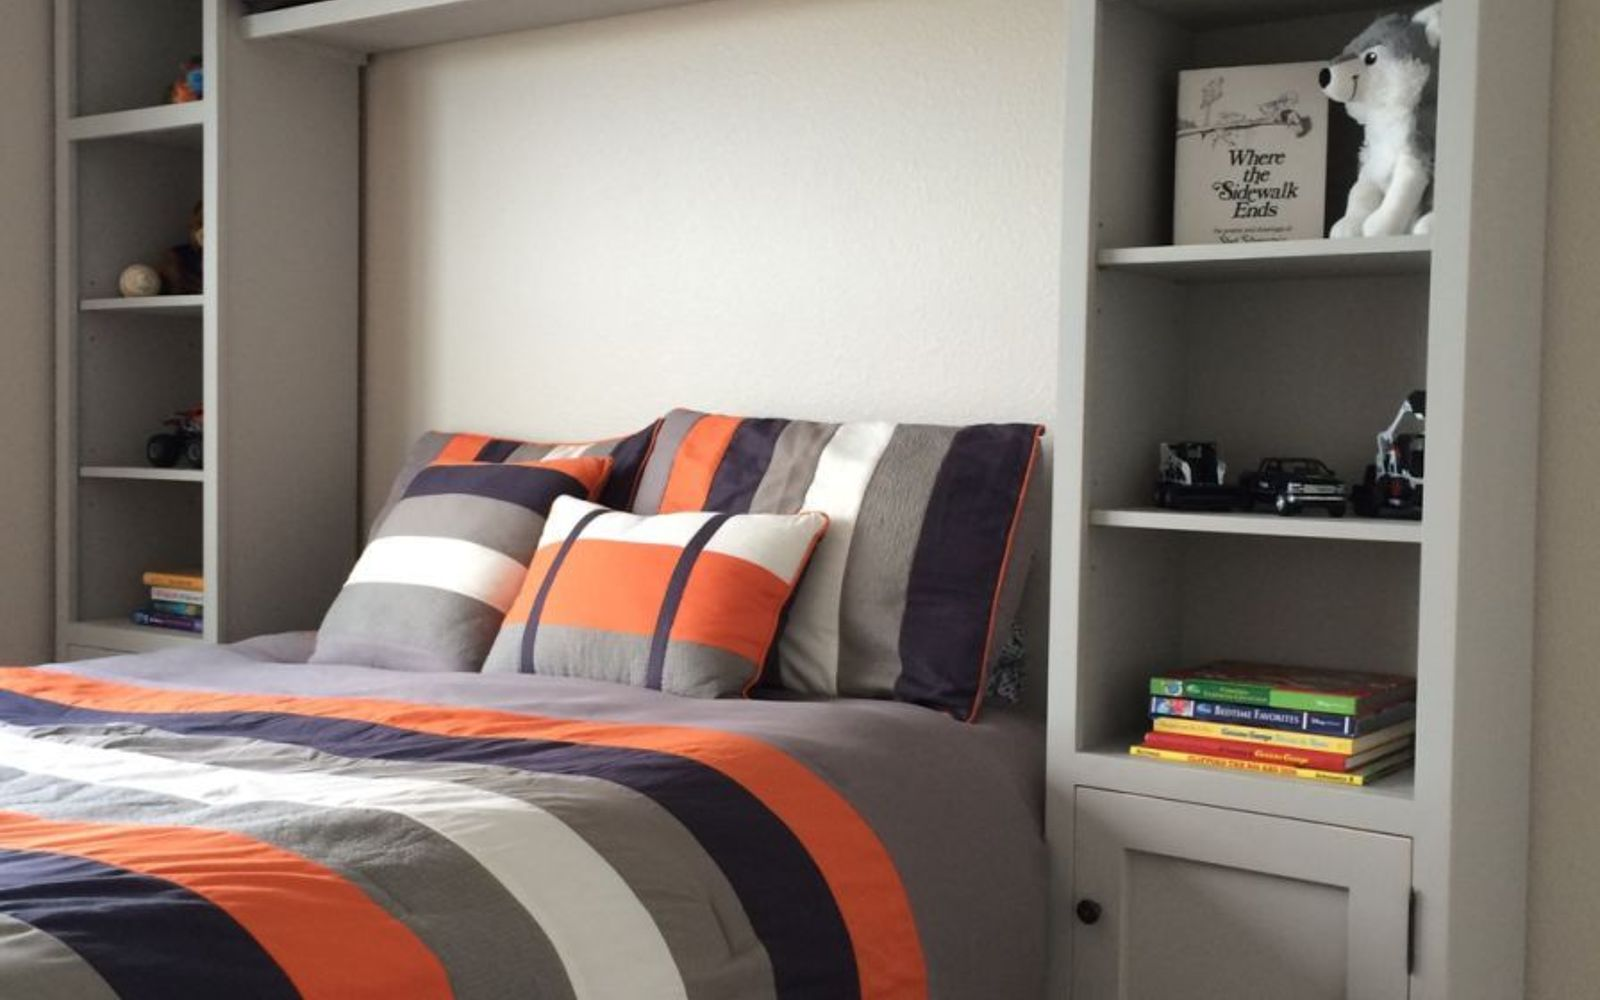 Build Your Room 30 stylish update ideas you'll want to use for your bedroom | hometalk